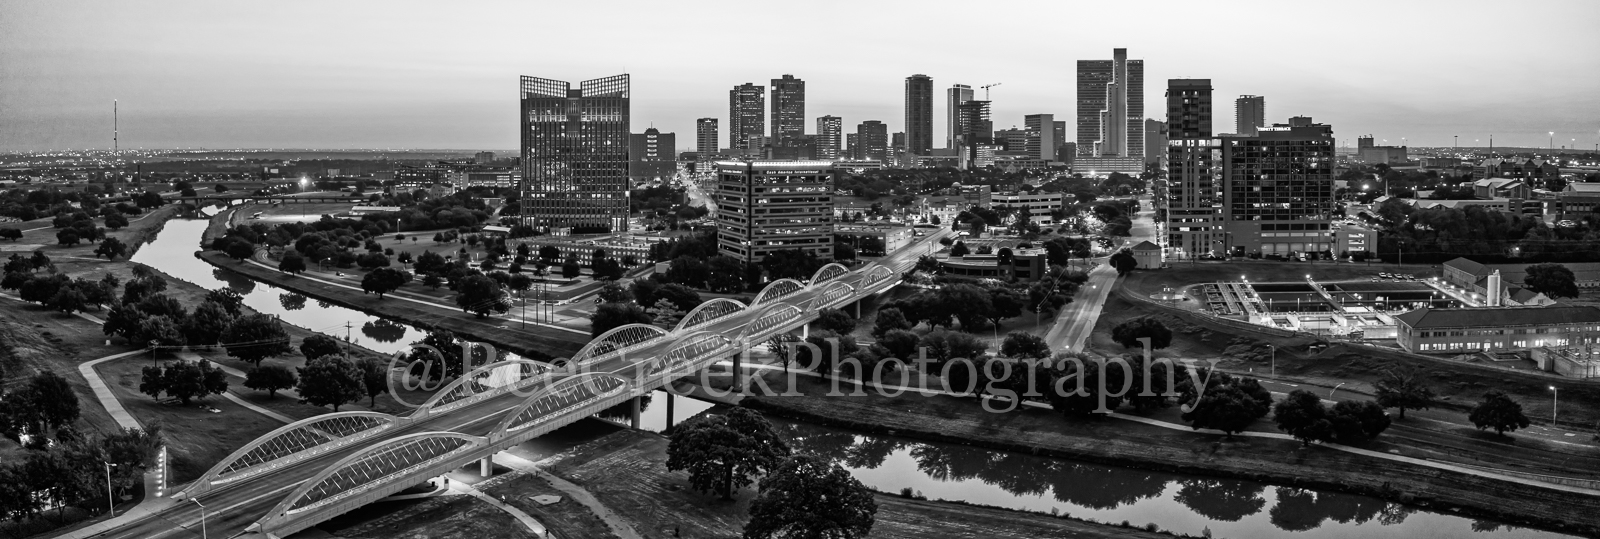 Fort Worth Skyline Dawn BW Pano 2 - We capture this aerial black and white panorama image at night of the Fort Worth skyline...